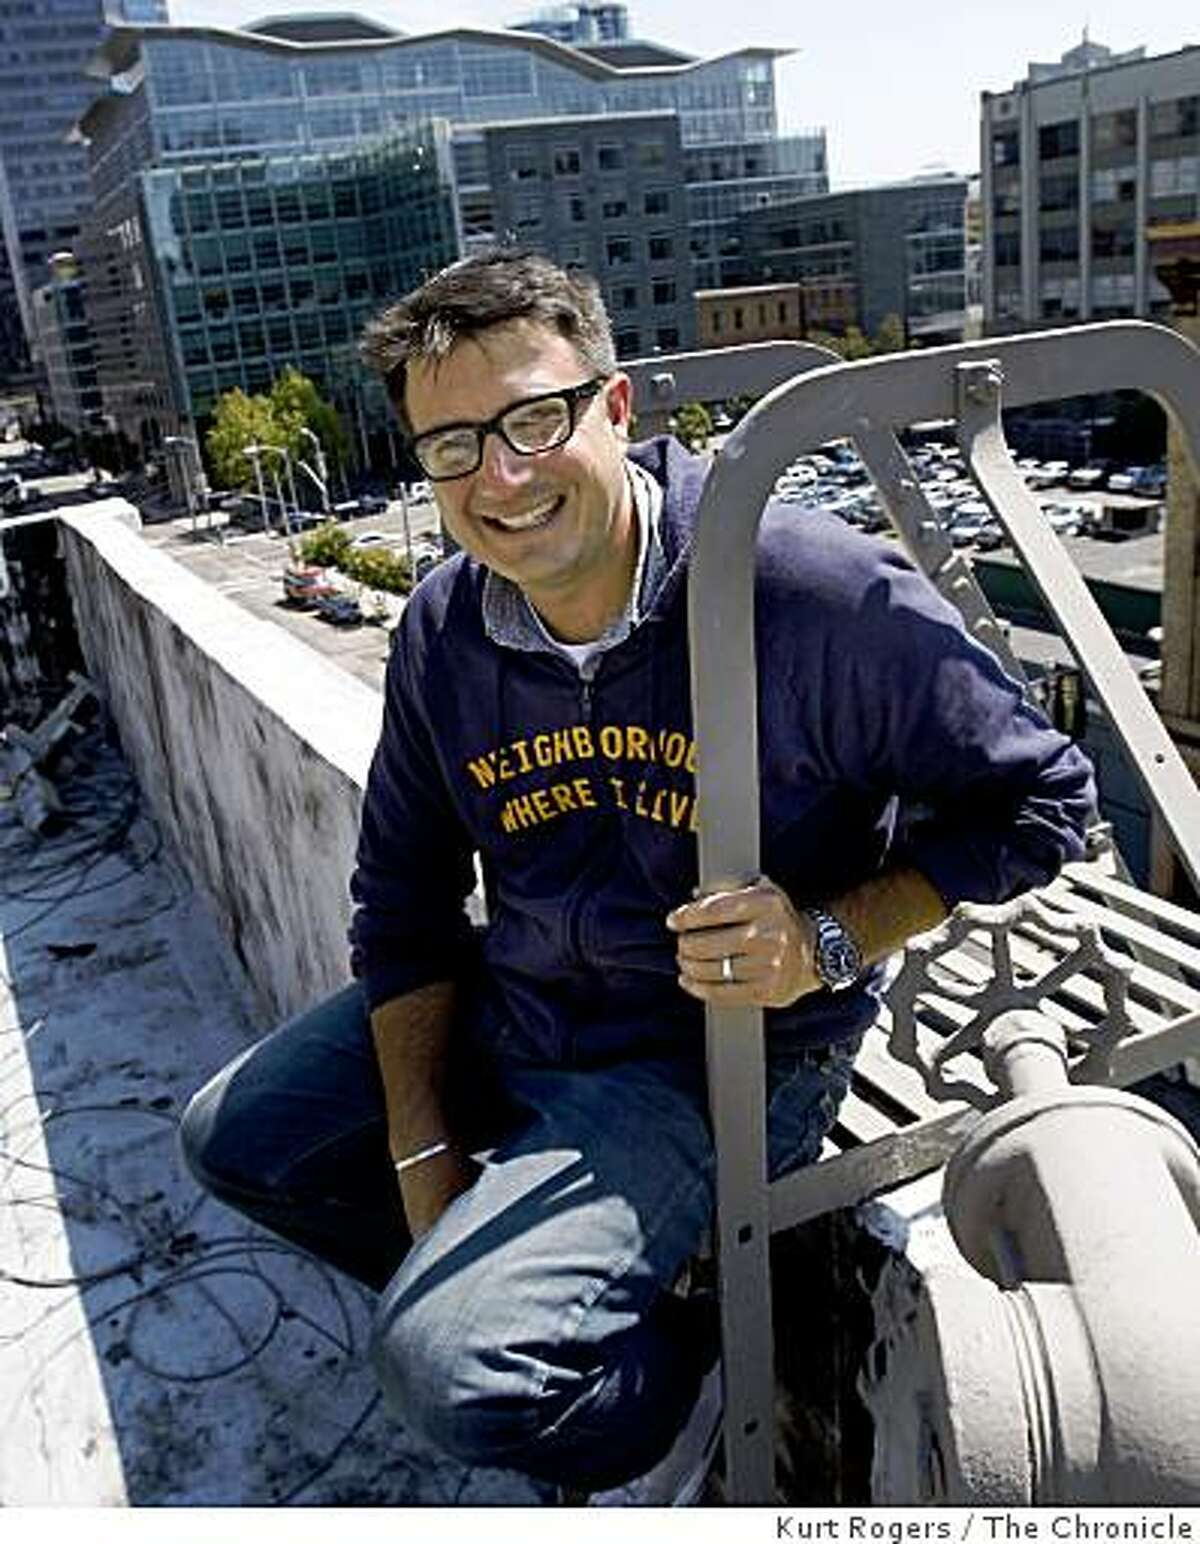 Will Rogers is the CEO of roofTop Comedy a web site that promotes stand-up comedians. on the roof of their office building on Thursday , Aug 14 2008 in San Francisco , Calif